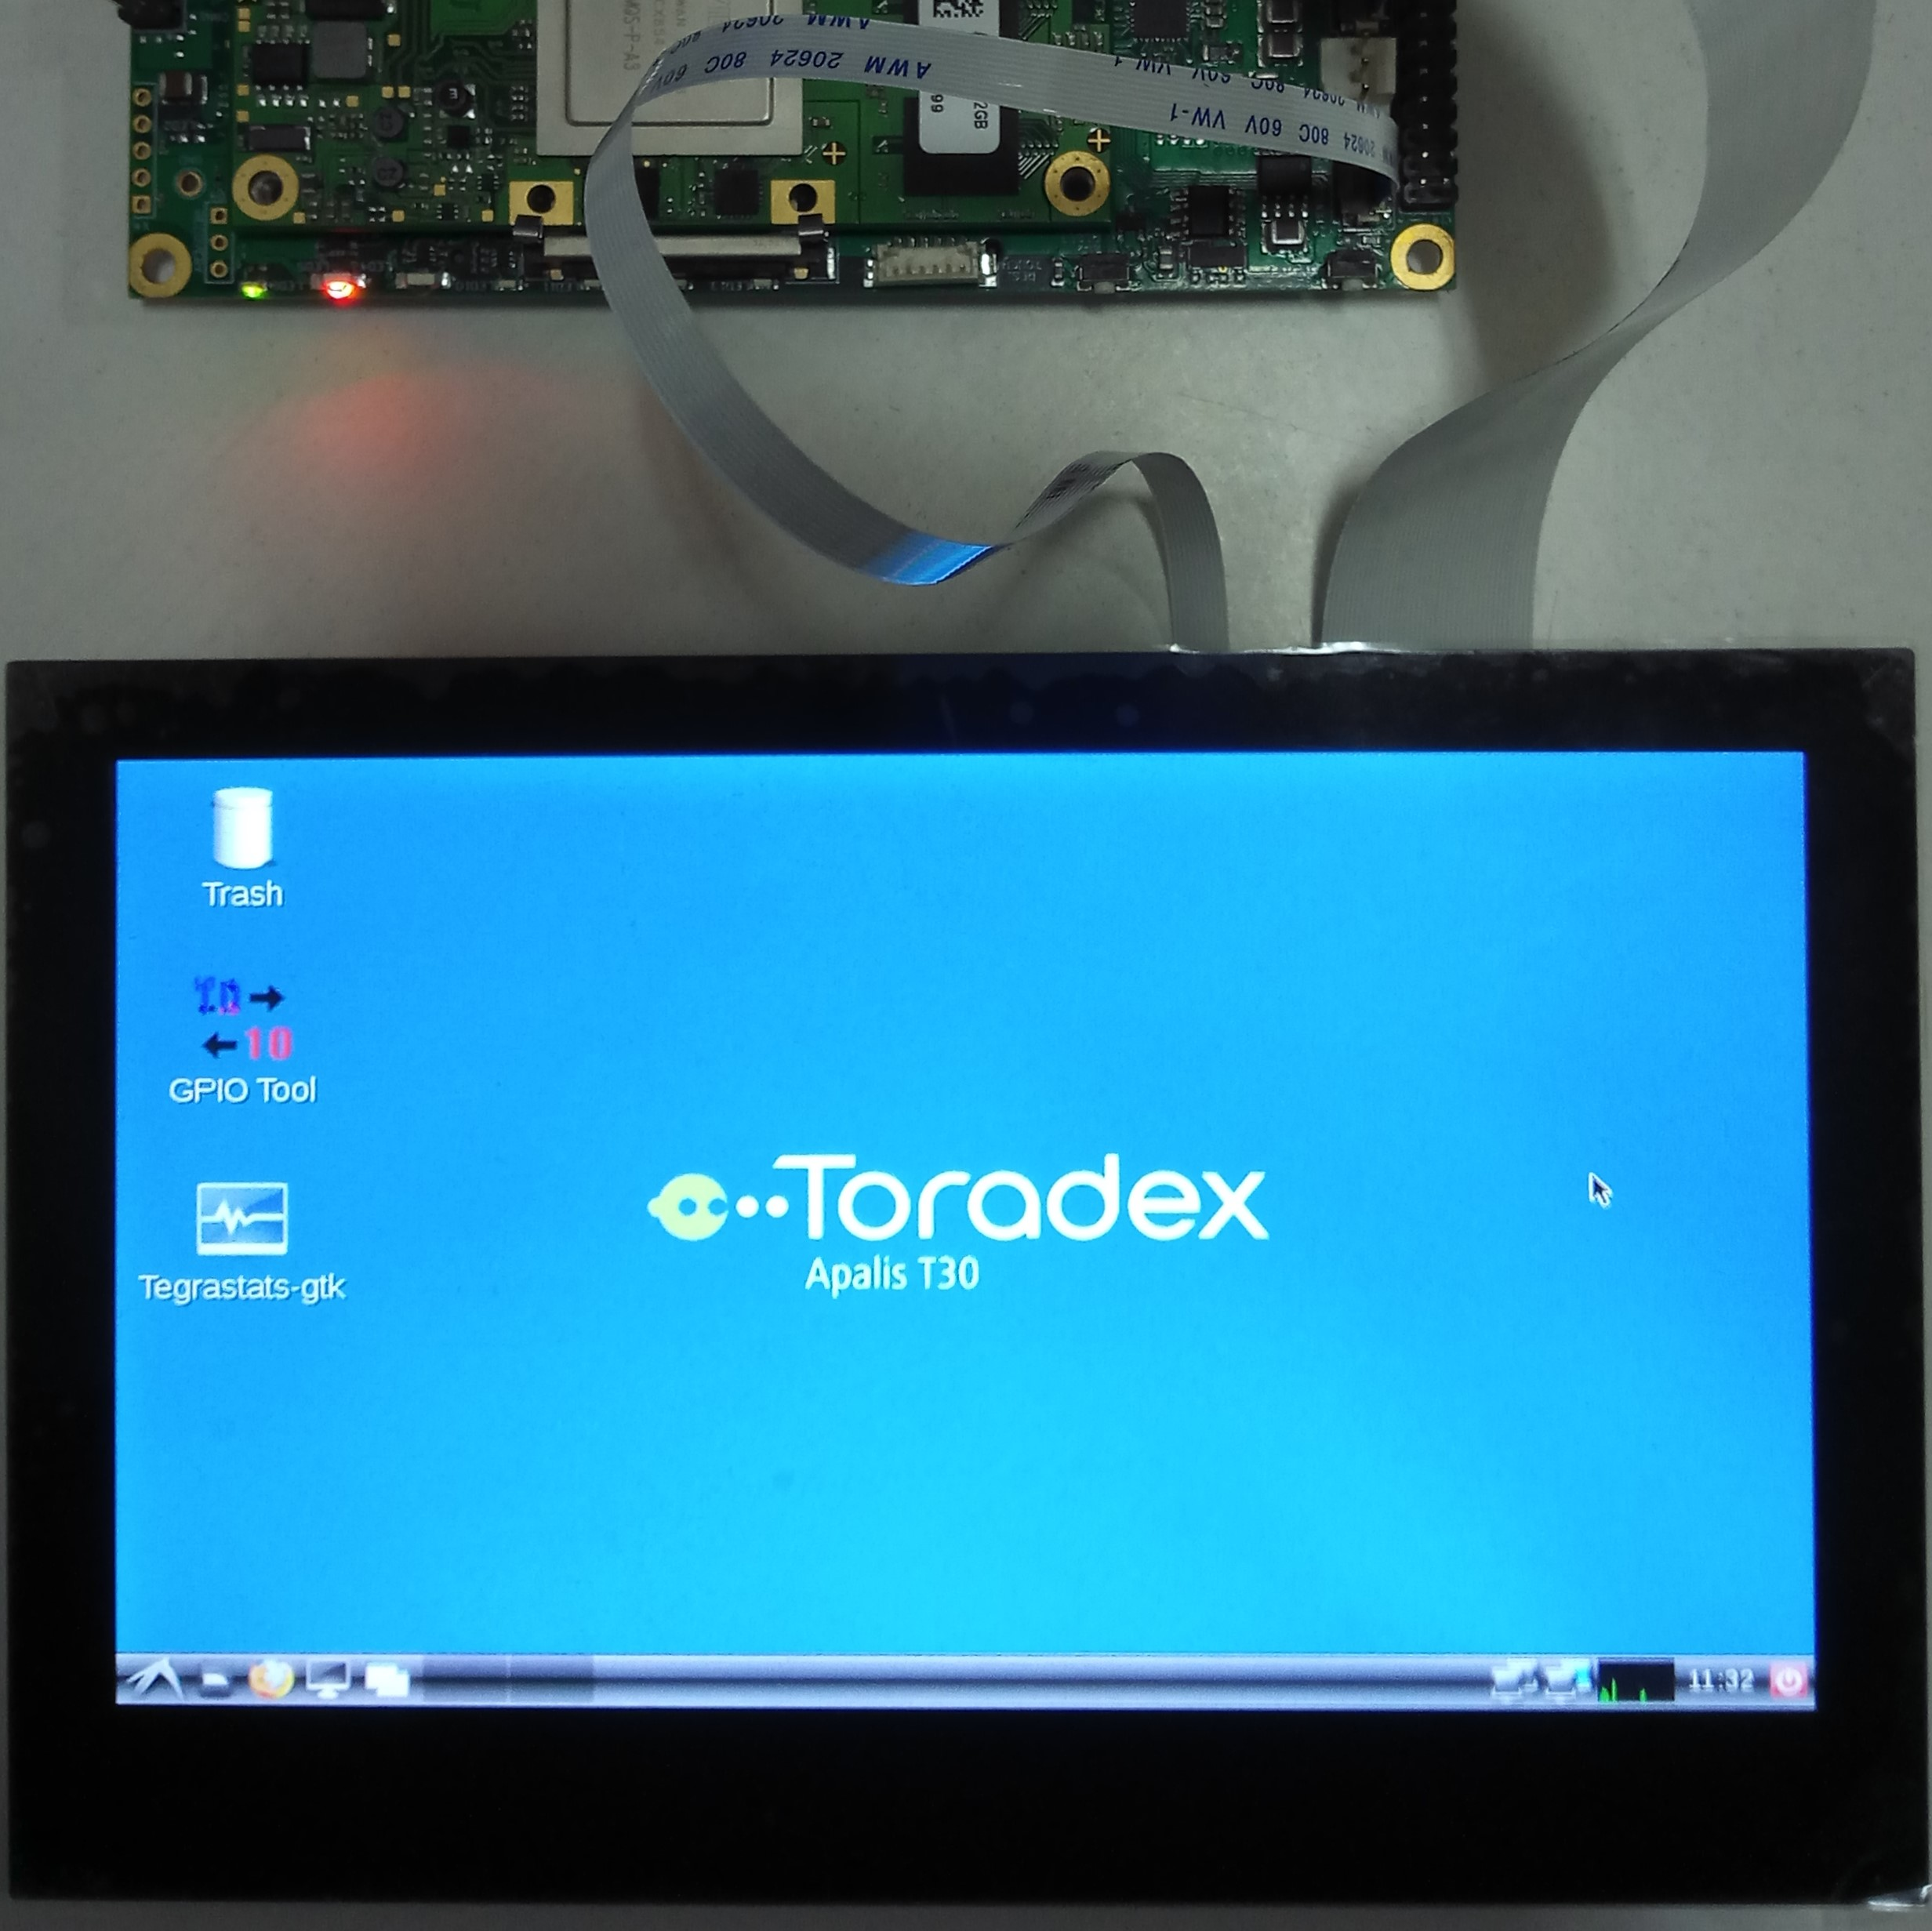 Working 7-inch Capacitive Touchscreen interfaced to Apalis T30